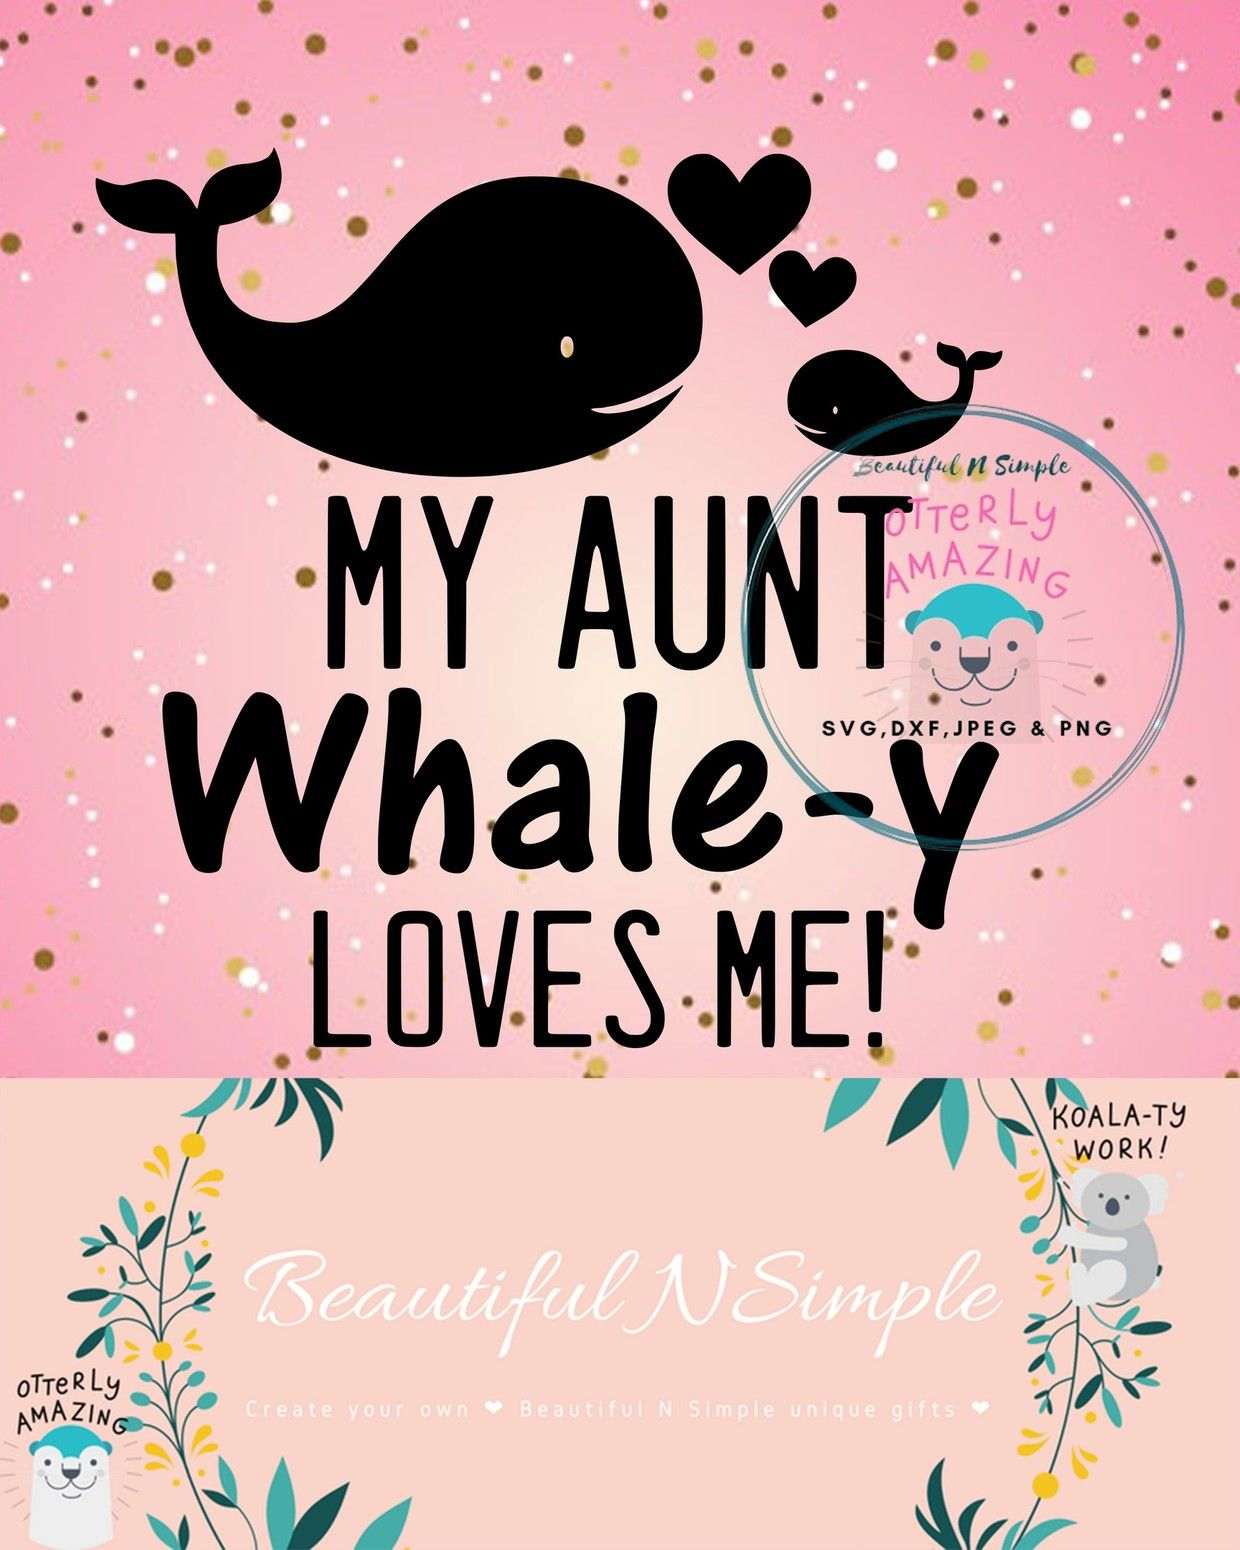 Download My Aunt Whale-y Loves me Whale SVG DXF File in 2020 | My ...